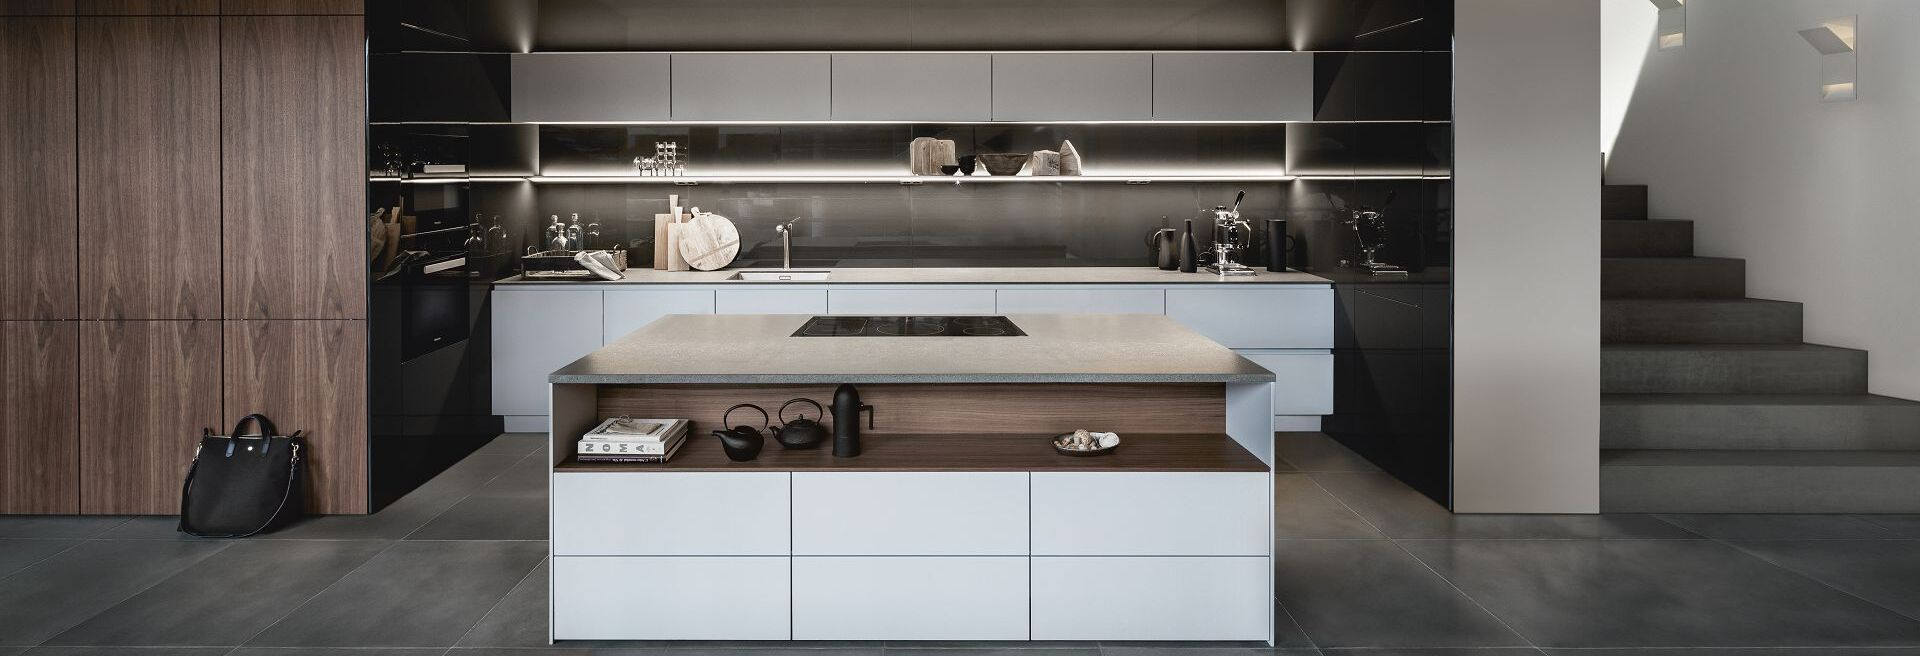 Dream Kitchen Design Advice From Your Experts Siematic